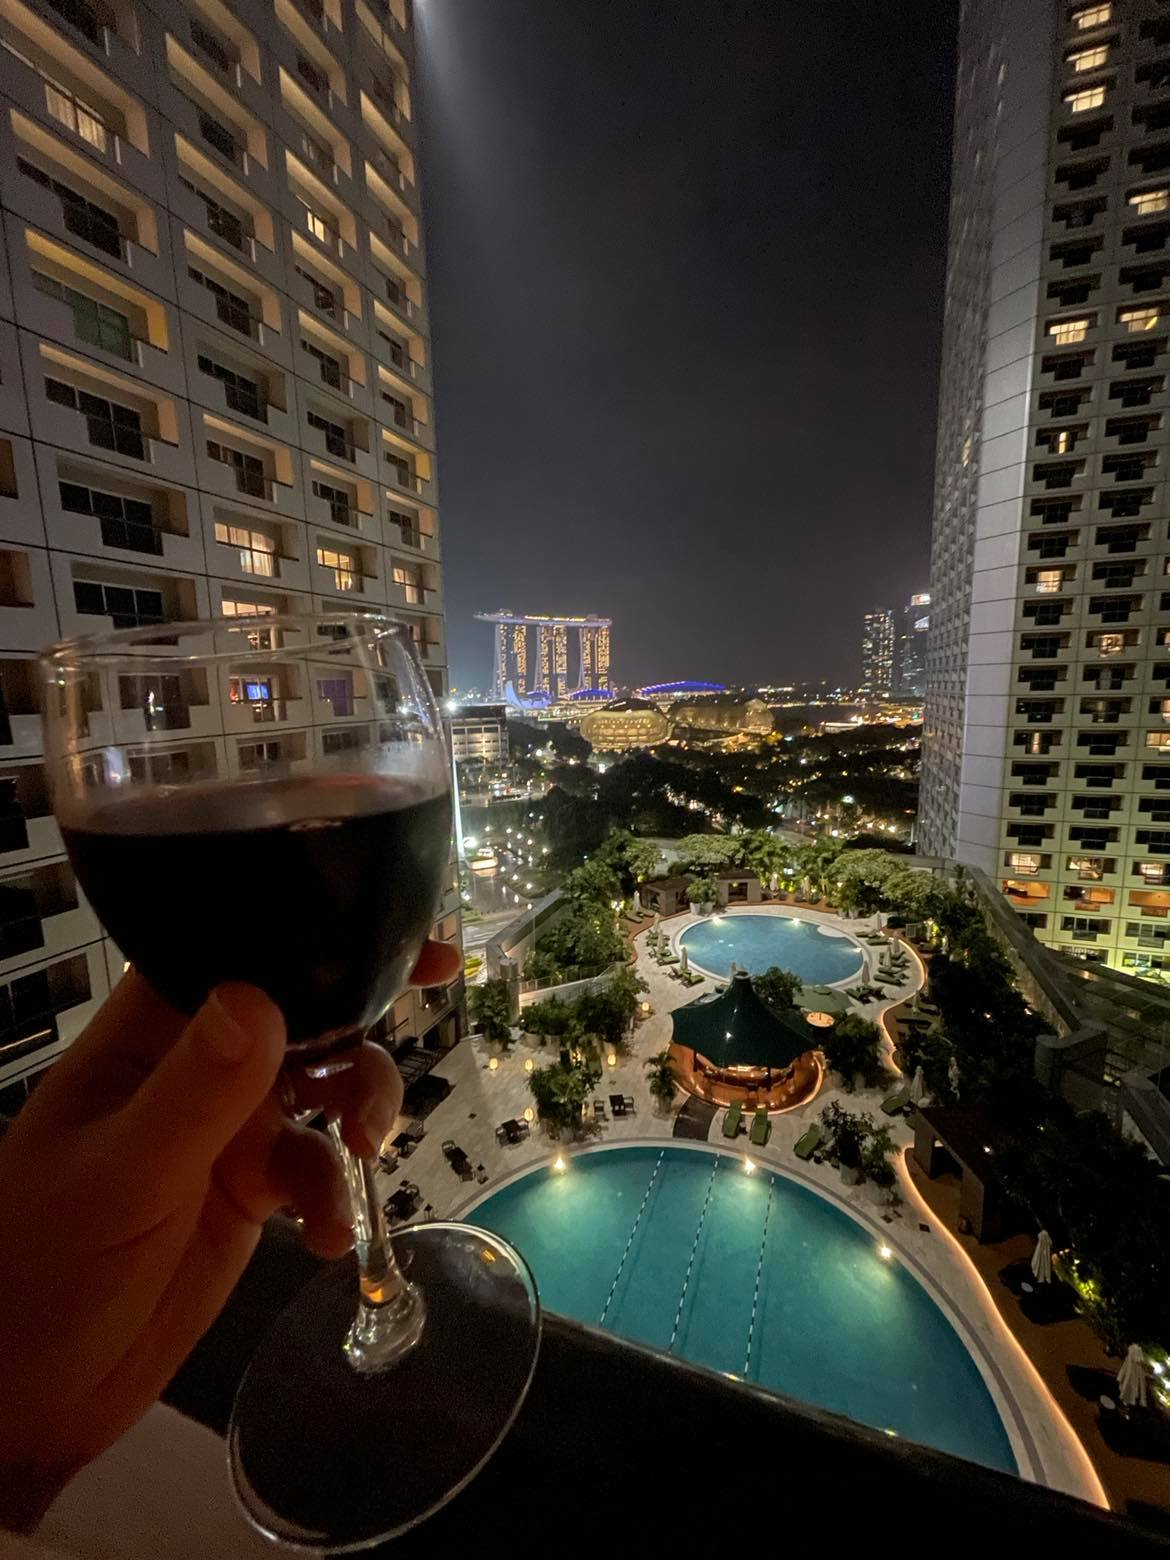 hand holding a glass of wine on balcony overlooking a hotel pool at night